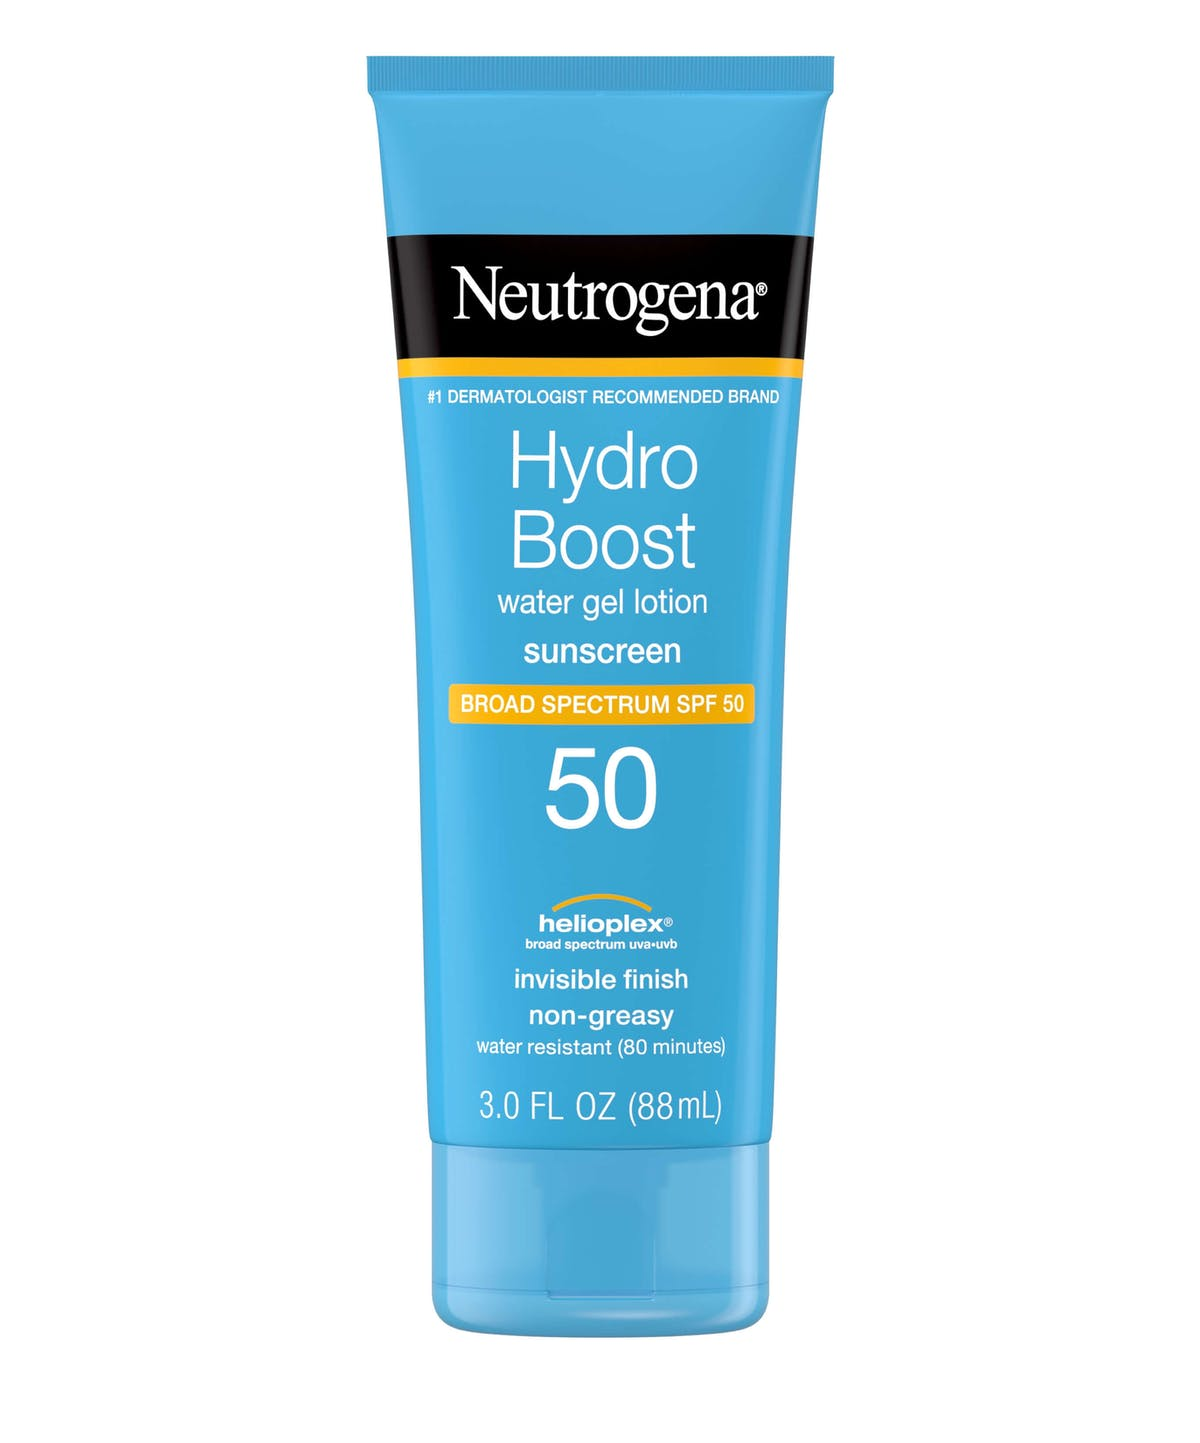 affordable-anti-aging-skincare-routine-Neutrogena Hydro Boost Water Gel Lotion Sunscreen SPF 50